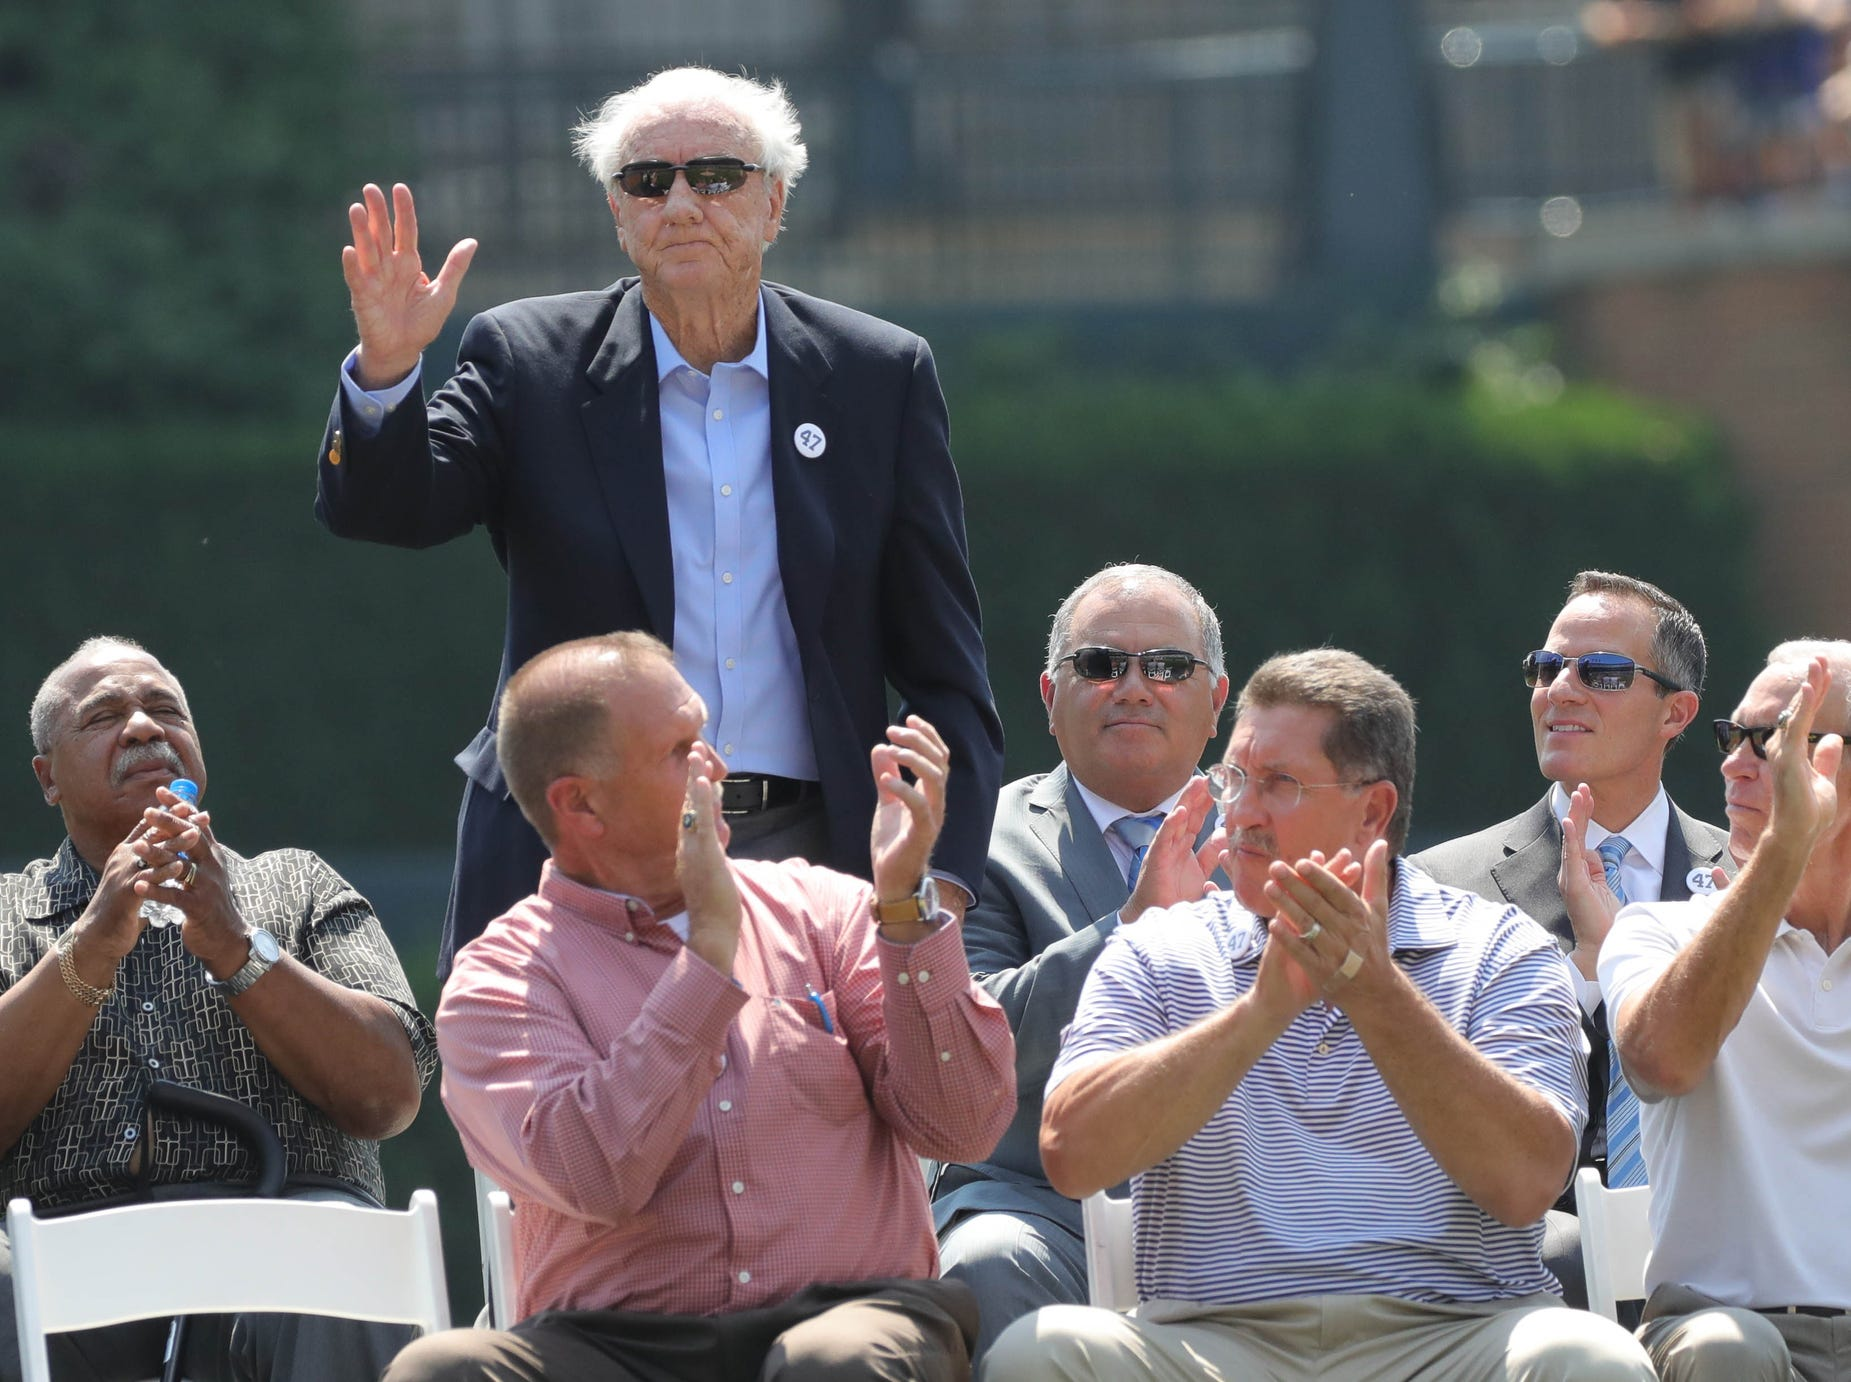 Detroit Tigers Hall of Famer Al Kaline stands on stage during a ceremony honoring Jack Morris before the start of the Tigers game against Minnesota on Sunday, August 12, 2018, at Comerica Park in Detroit.